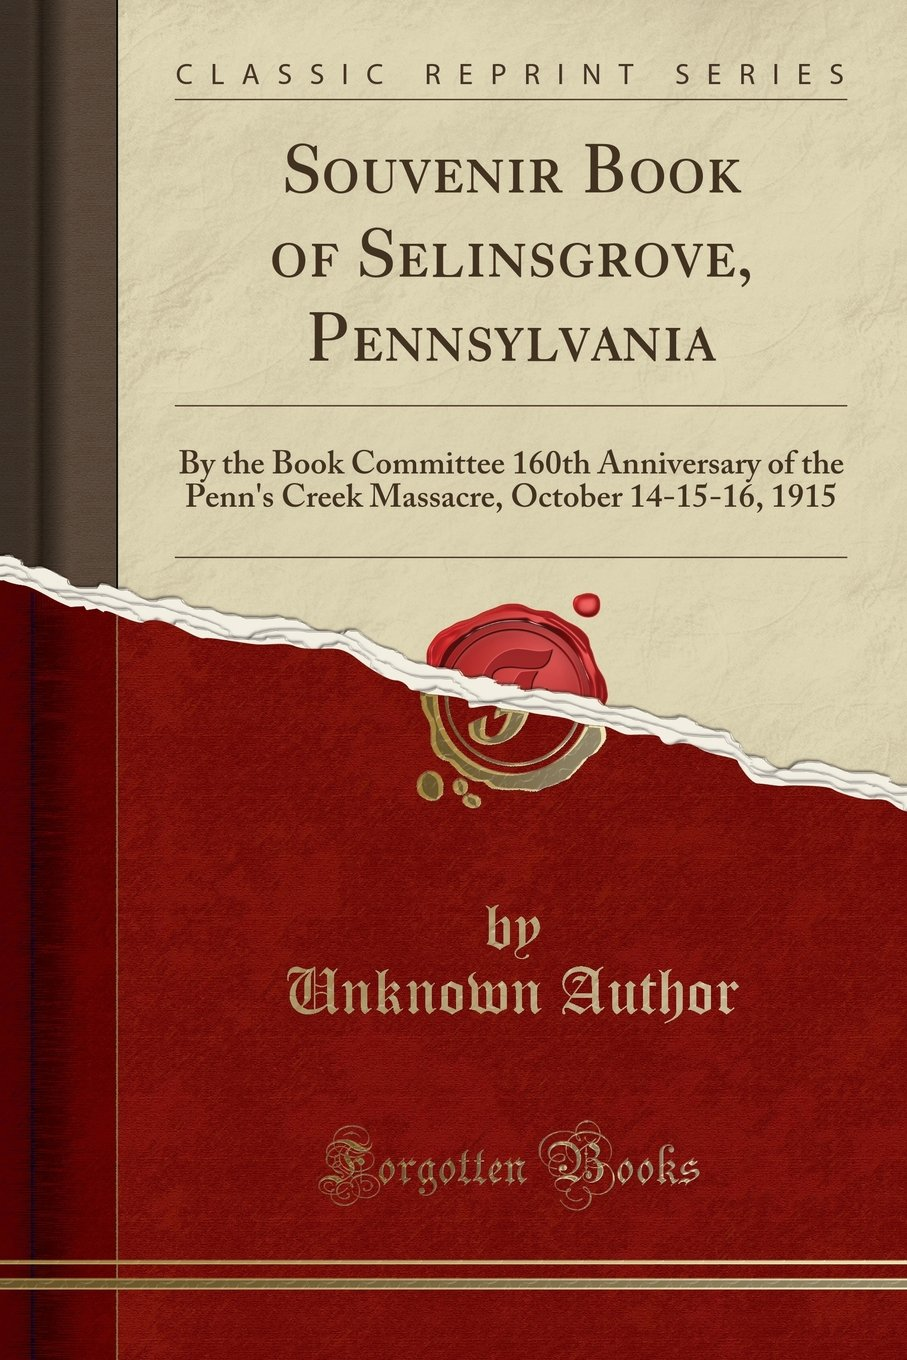 Download Souvenir Book of Selinsgrove, Pennsylvania: By the Book Committee 160th Anniversary of the Penn's Creek Massacre, October 14-15-16, 1915 (Classic Reprint) PDF